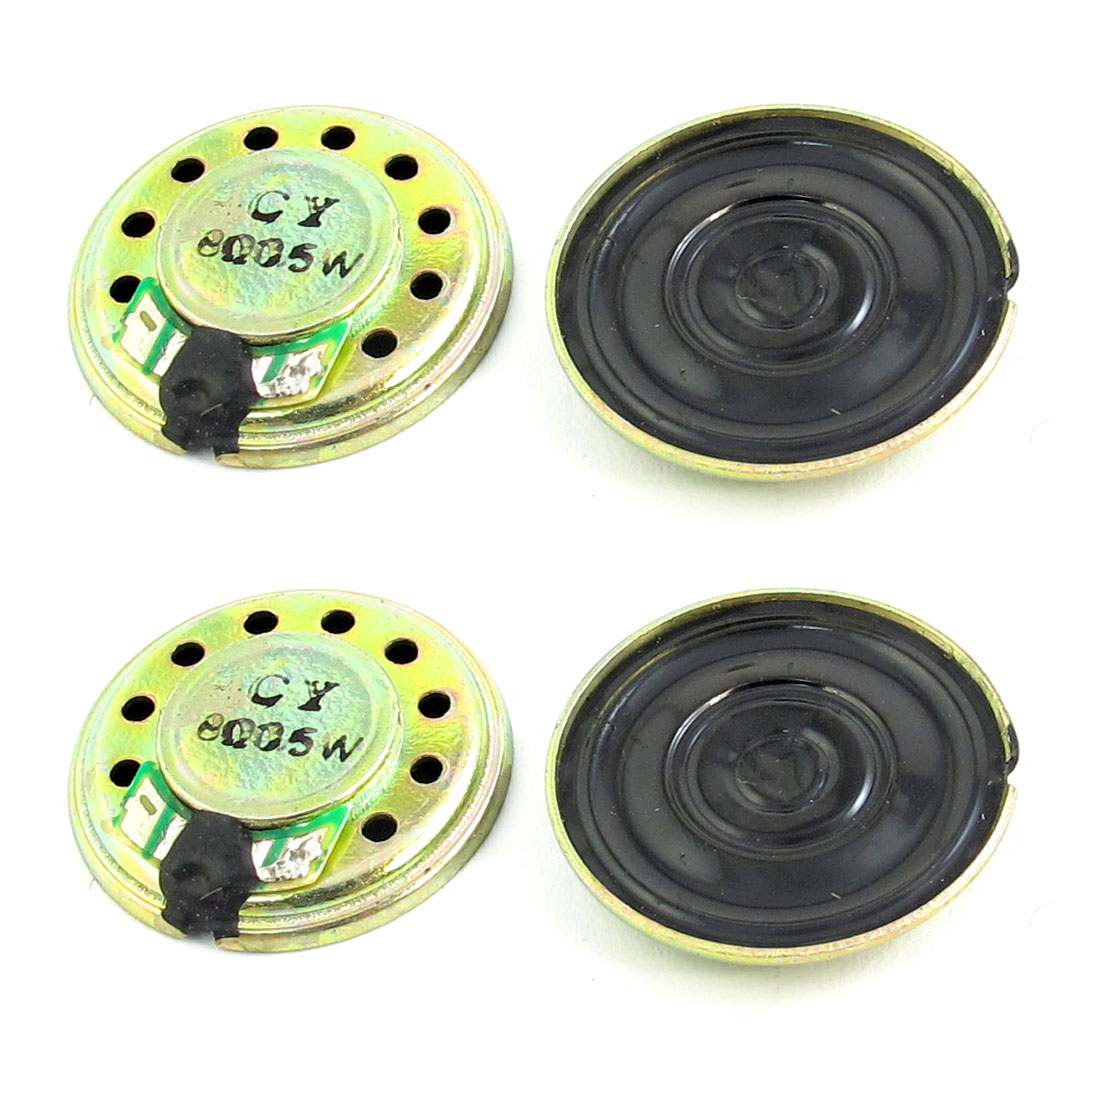 4Pcs 0.5W 8 Ohm 20mm Dia Metal Housing Round Magnet Speaker Loudspeaker Horn for Electric Toys